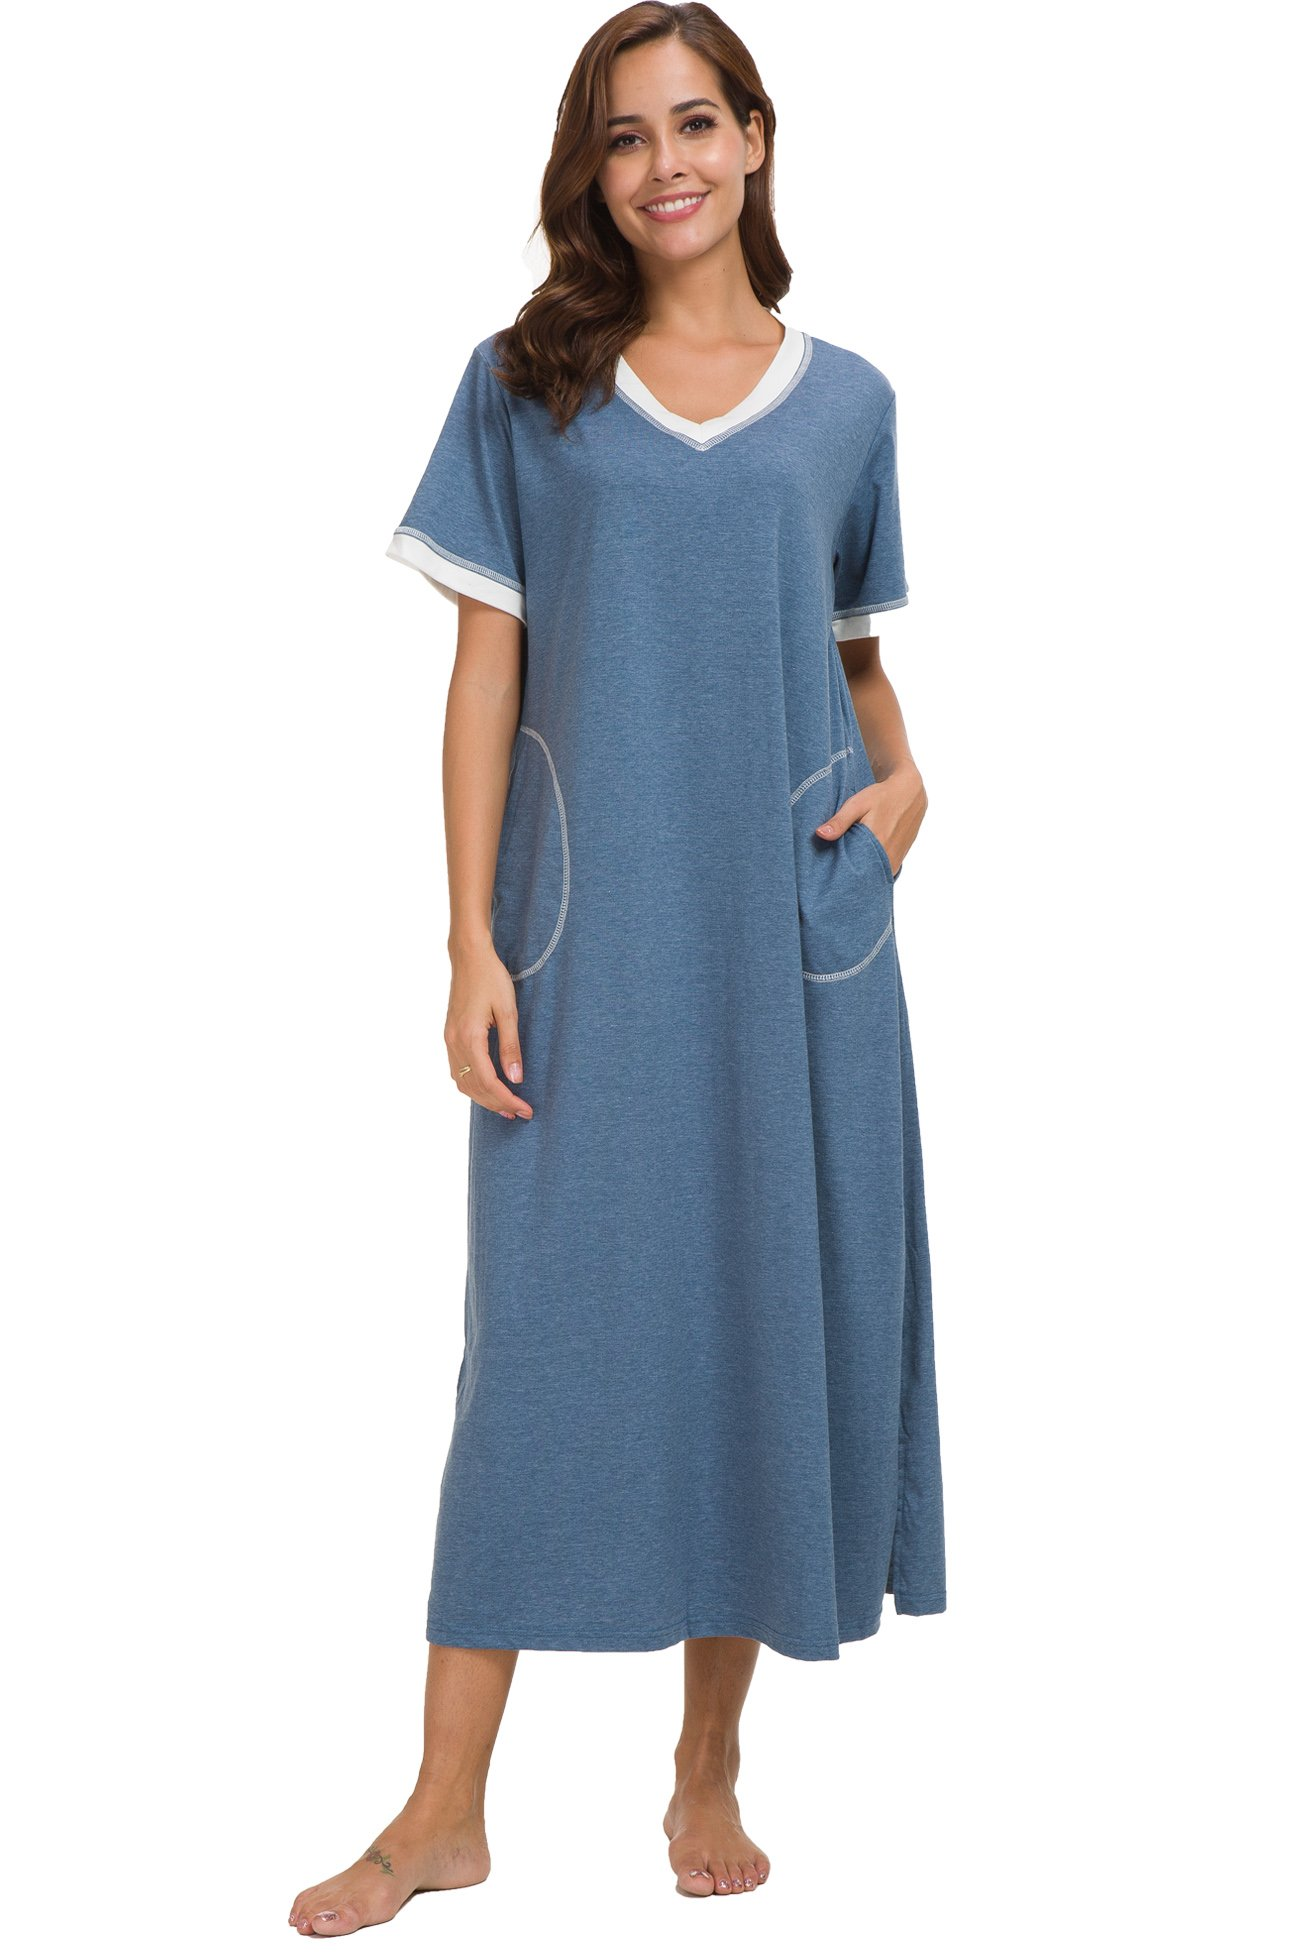 Supermamas Long Nightgown Womens Cotton Knit Short Sleeve Nightshirt with Pockets(Blue, XXL)